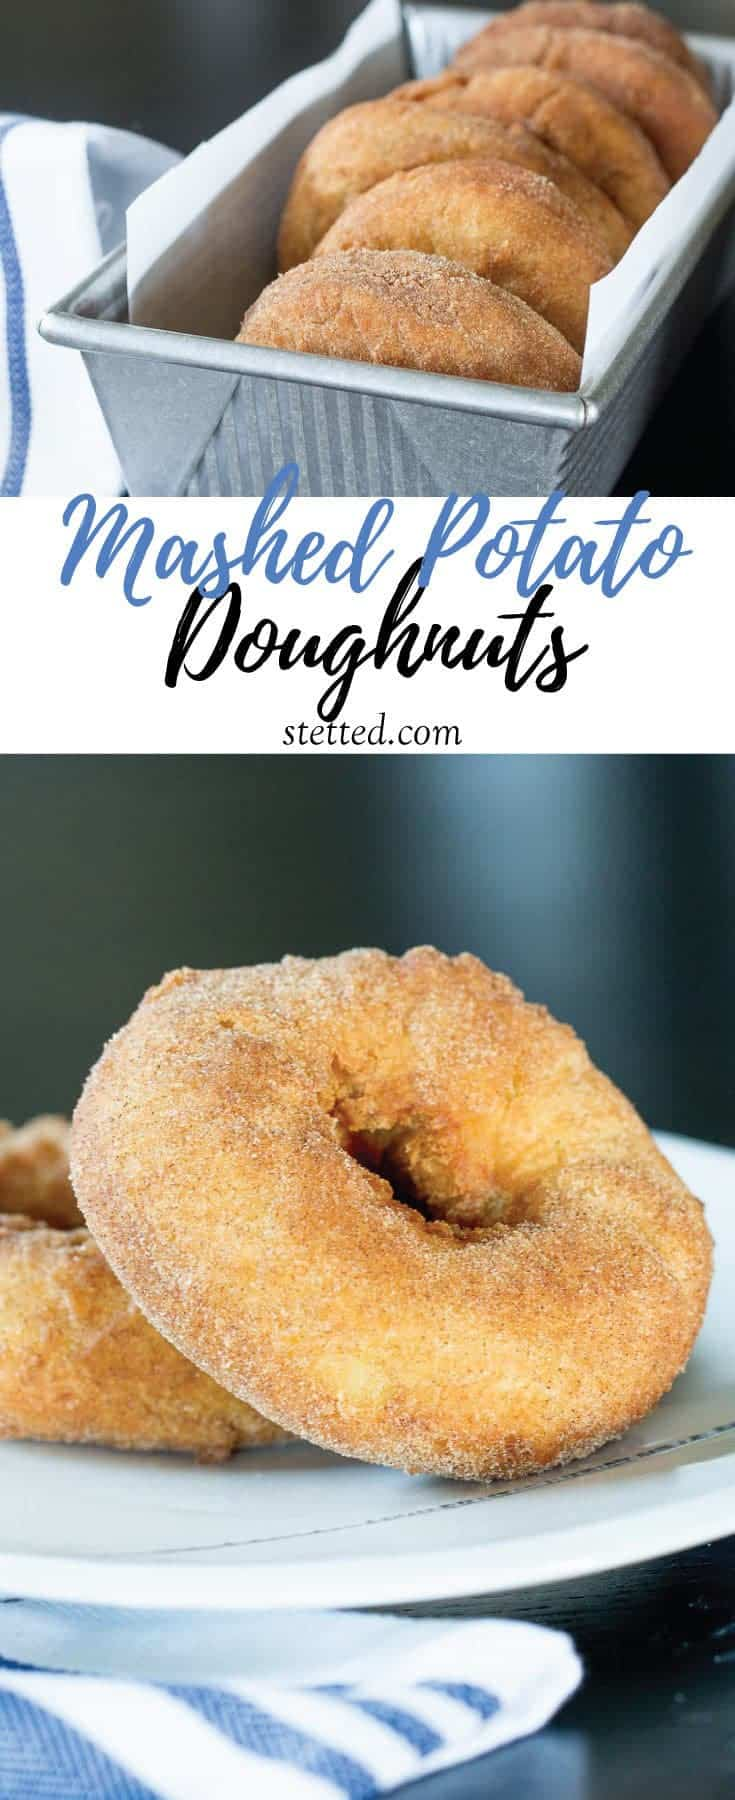 Mashed potato doughnuts are an old-fashioned-style doughnut everyone will love! Nothing beats homemade doughnuts.